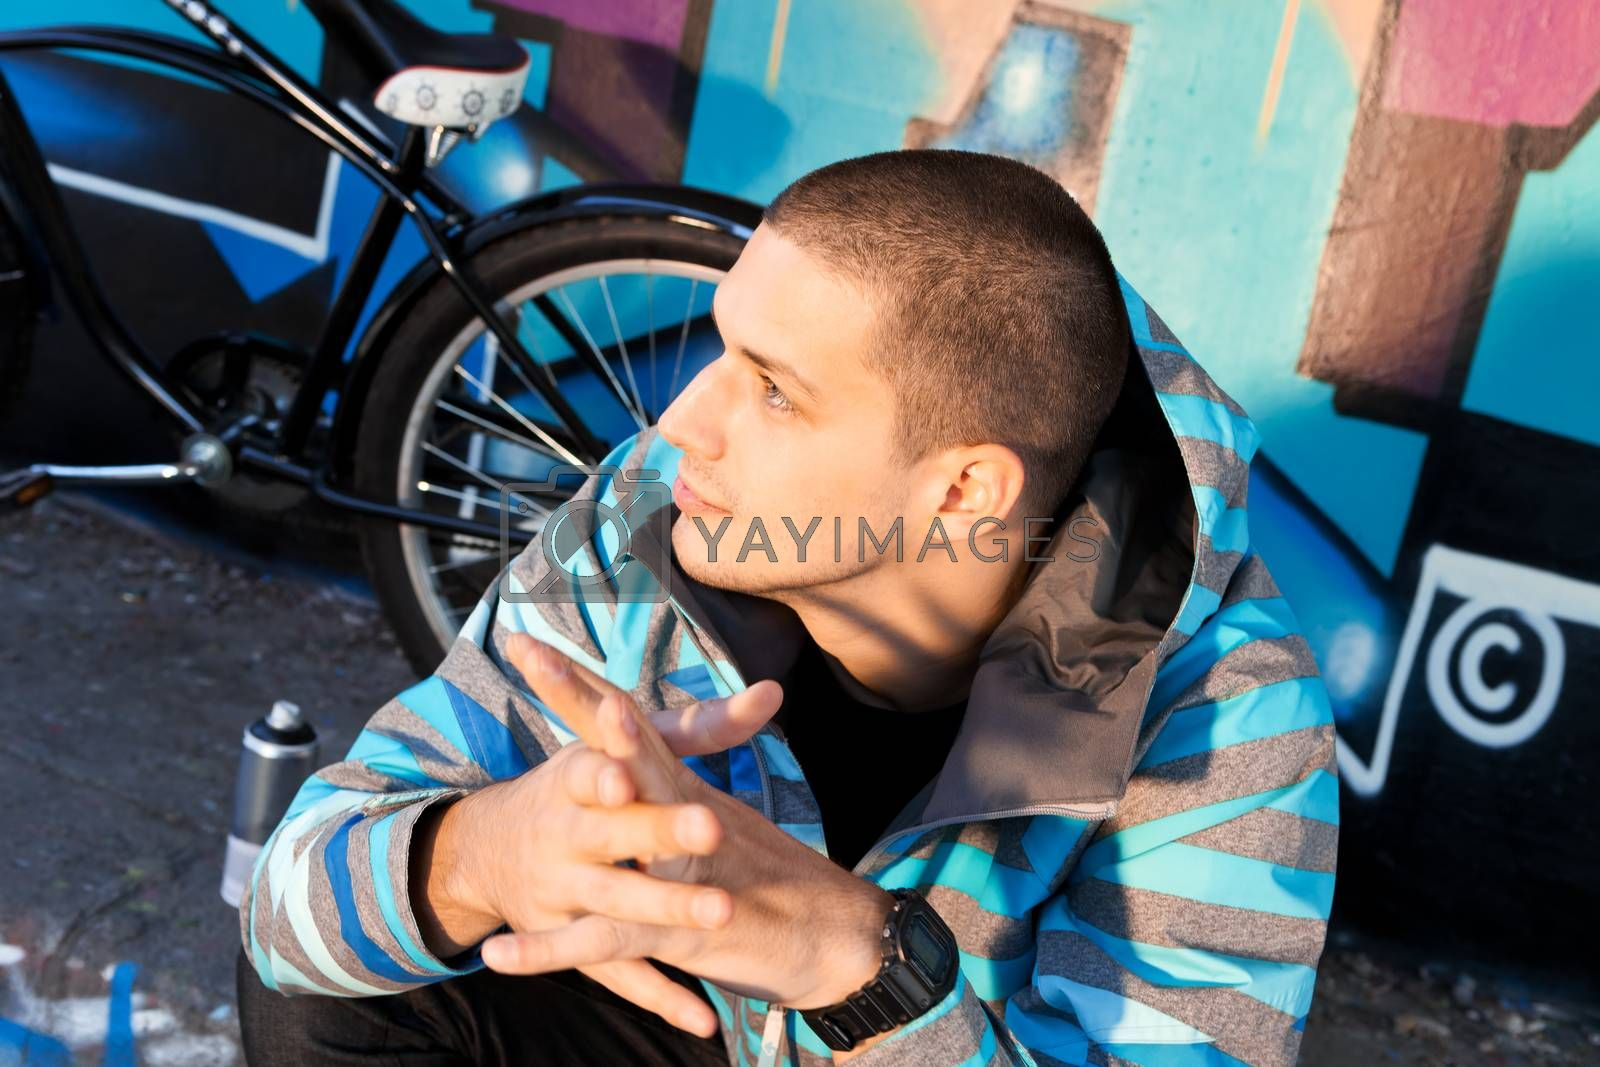 Young male graffiti artist sitting in front of finished piece on wall with city cruiser bike leaning next to him. Urban culture.